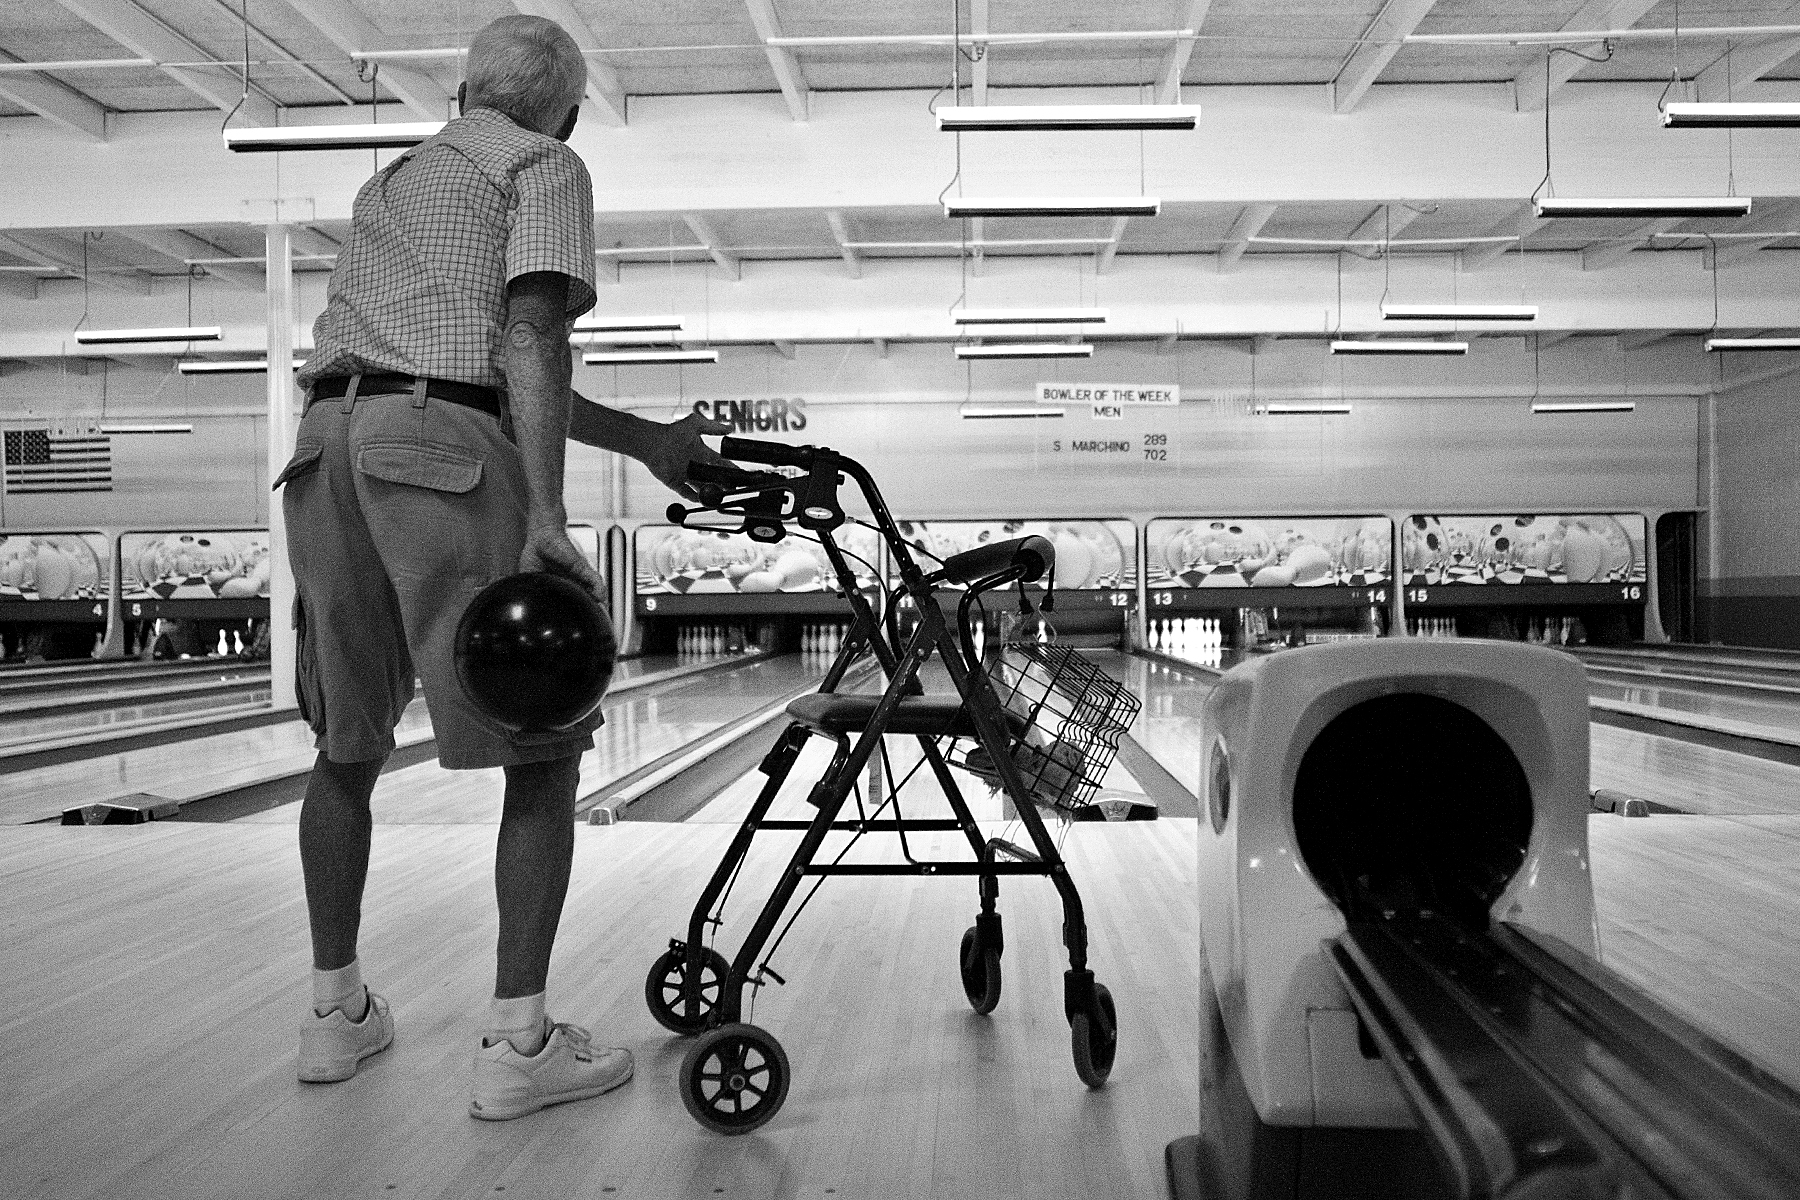 As often as his body would cooperate, Red would join a group of seniors who meet Tuesdays and Fridays for a bowling league at Dubois Lanes in Huntingburg. Red used his walker to position himself and maintain his balance before heaving the 16-pound ball down the lane. Red bowled a 124 the first game, but had the strength to bowl only an 82 the second game.